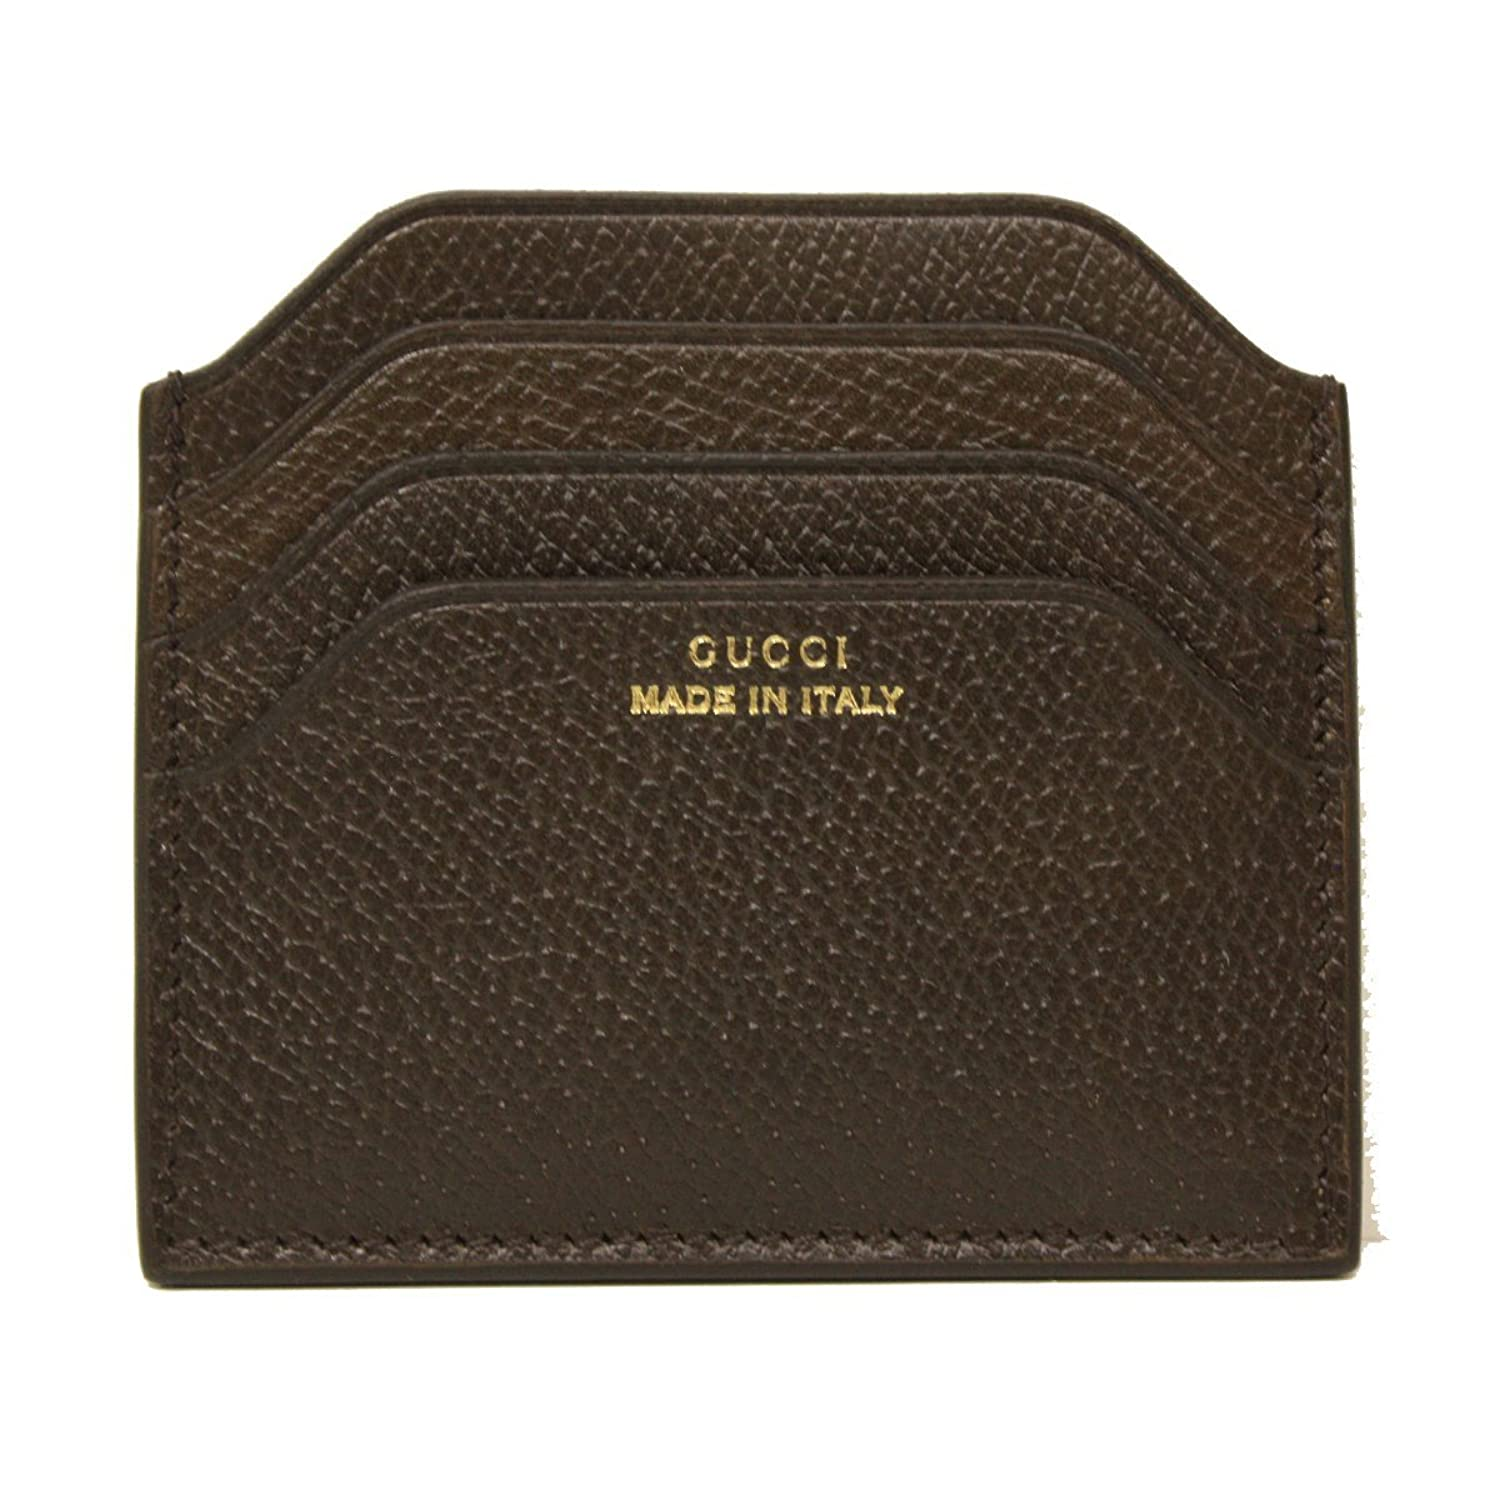 Amazon.com: Gucci \'Made in Italy\' Pigskin Leather Card Case 322107 ...